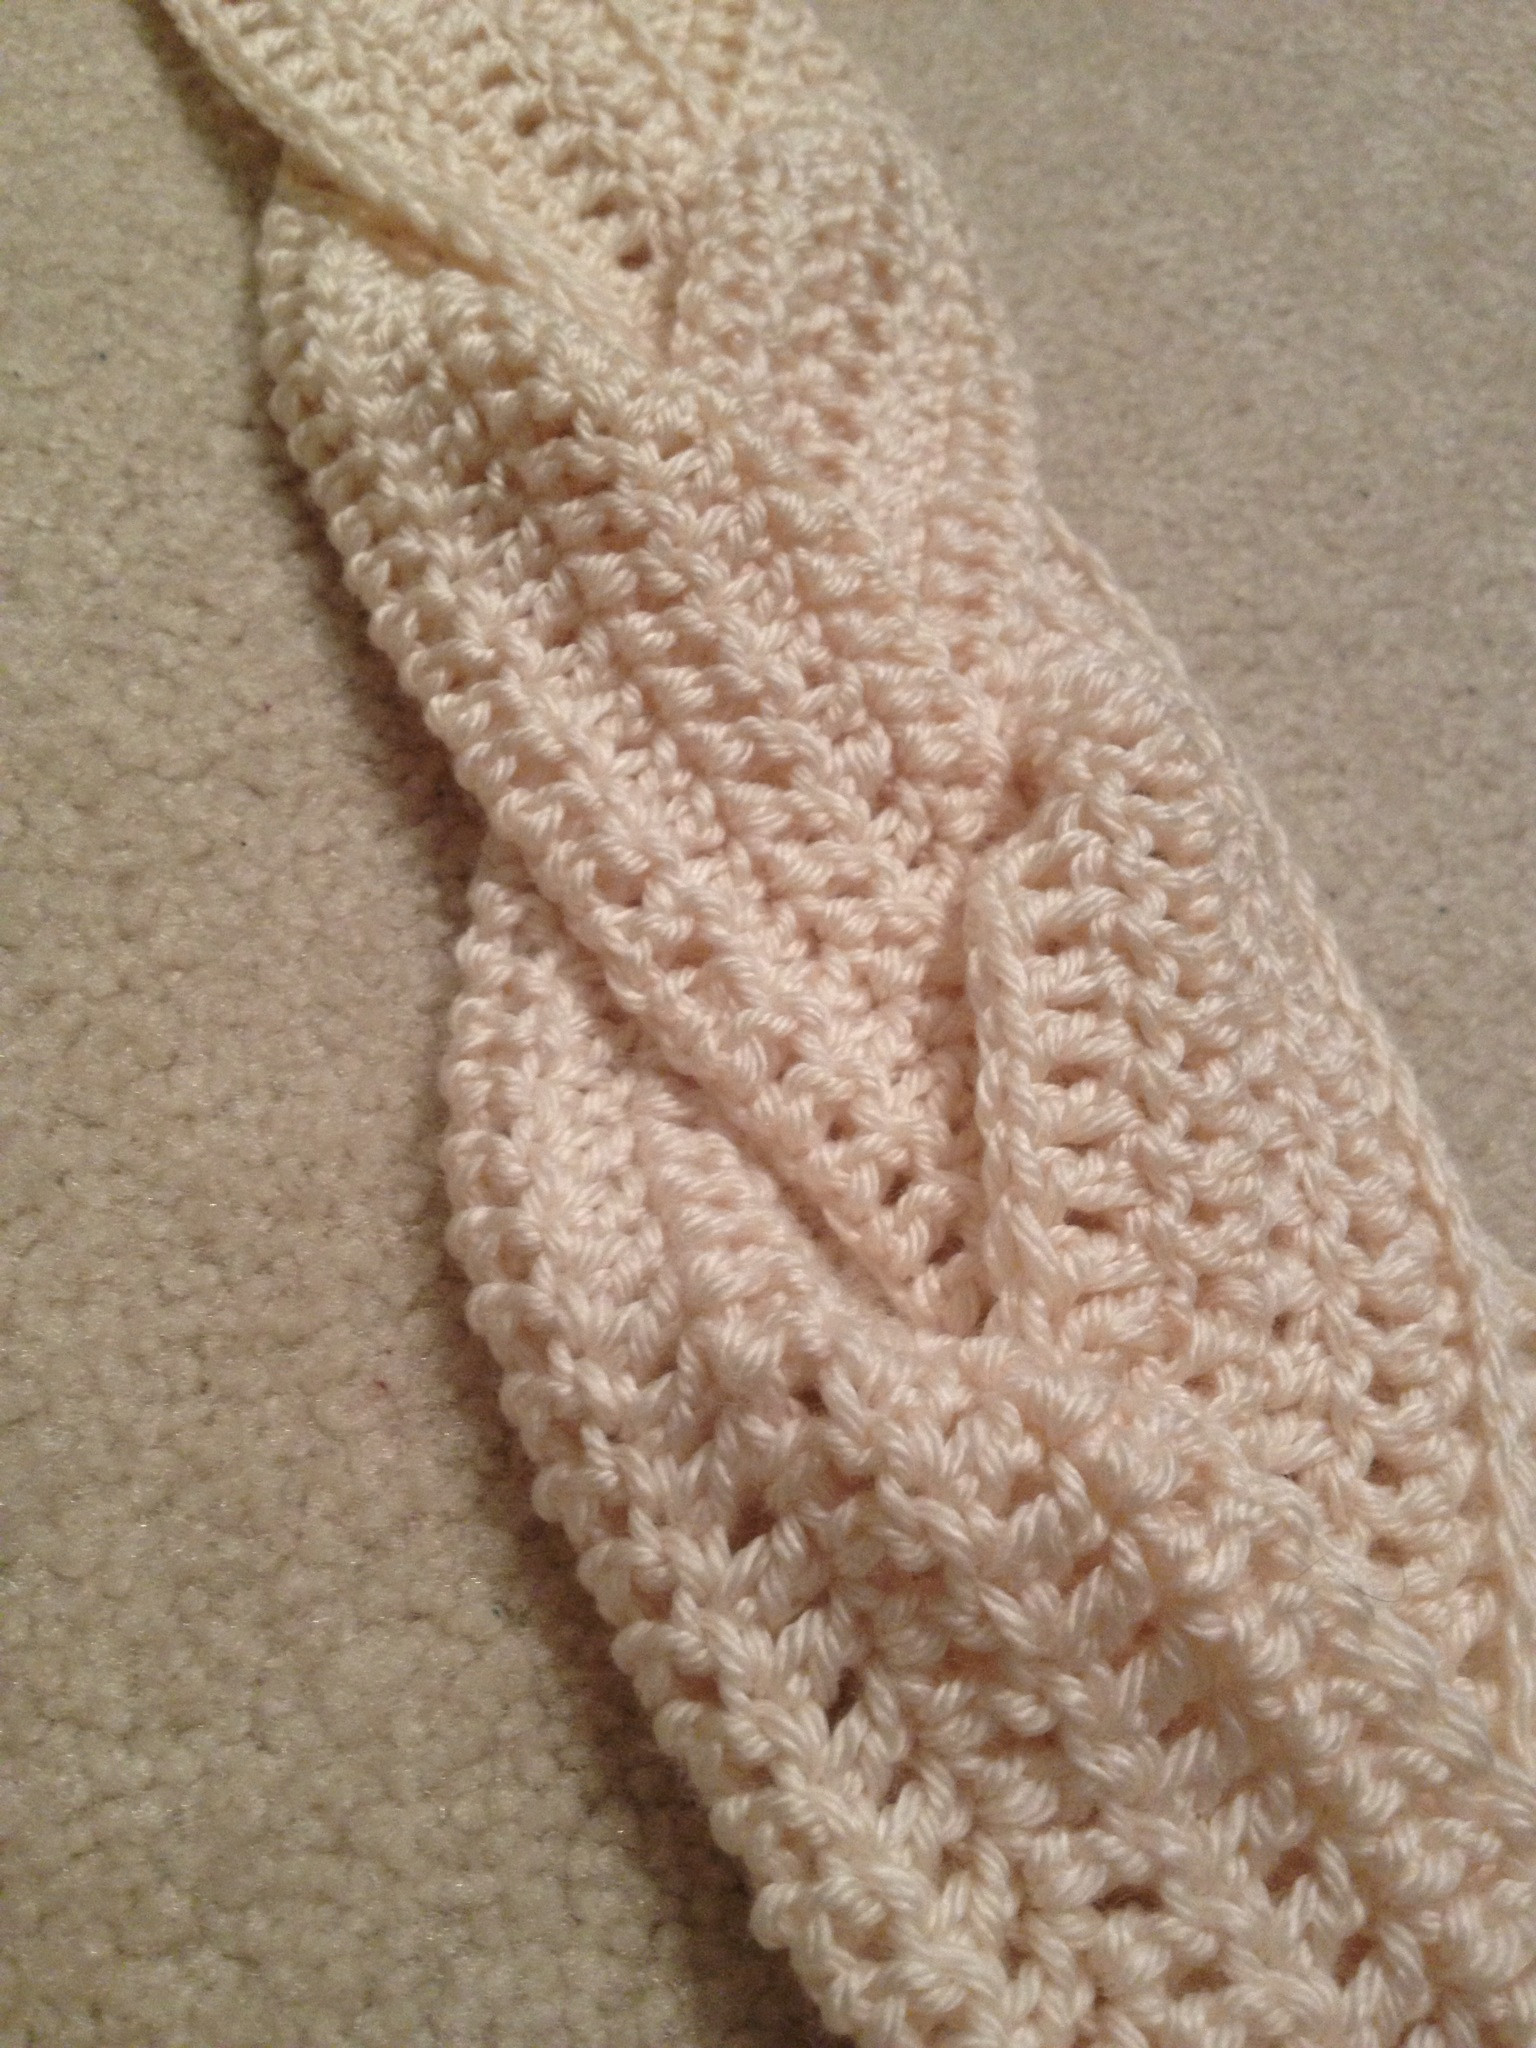 Lovely Braided Crochet Scarf Pattern Crochet Stitches for Scarves Of Gorgeous 48 Ideas Crochet Stitches for Scarves